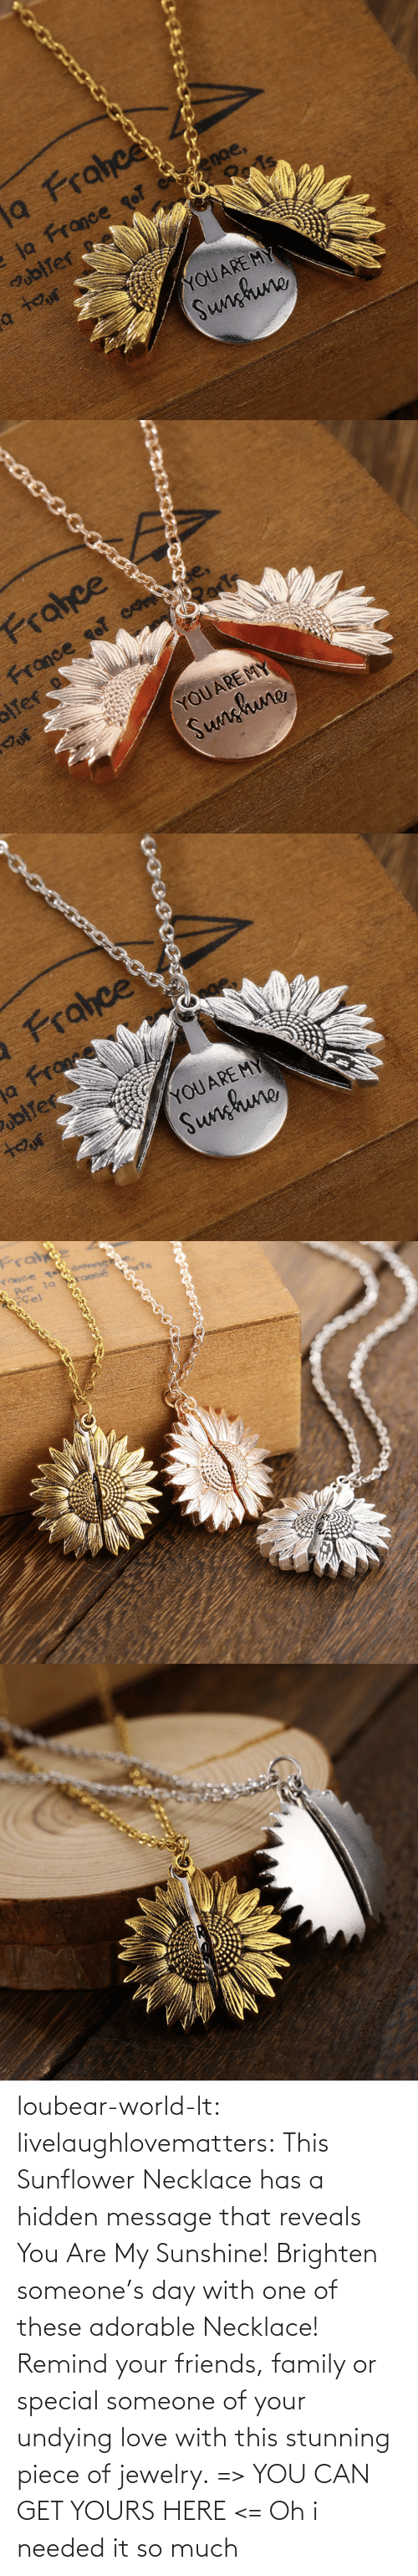 My Sunshine: loubear-world-lt: livelaughlovematters:   This Sunflower Necklace has a hidden message that reveals You Are My Sunshine! Brighten someone's day with one of these adorable Necklace! Remind your friends, family or special someone of your undying love with this stunning piece of jewelry. => YOU CAN GET YOURS HERE <=    Oh i needed it so much